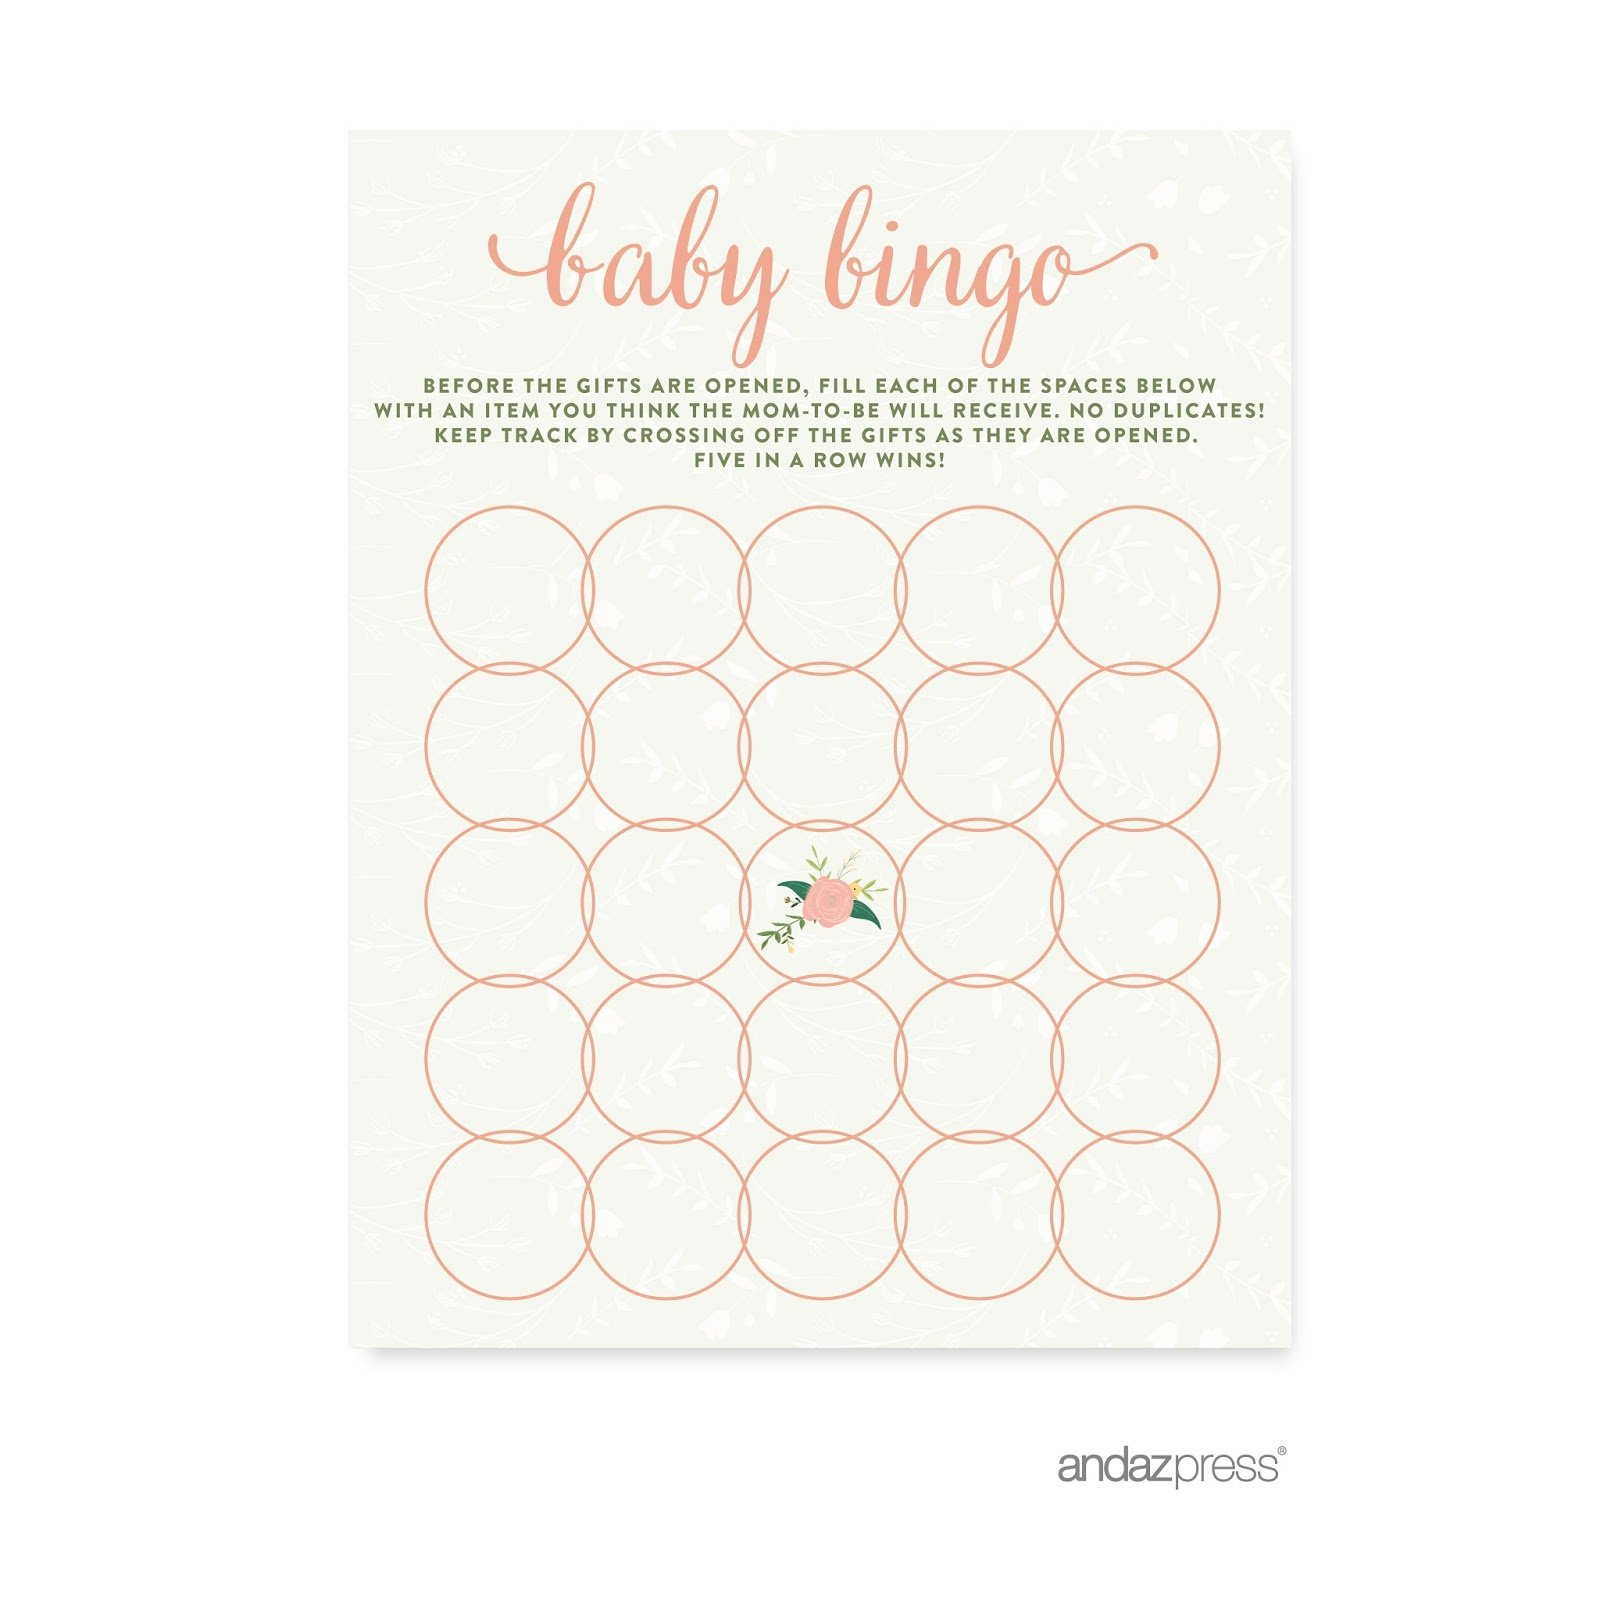 Andaz Press Floral Roses Girl Baby Shower Collection, Games, Activities, Decorations, Baby Bingo Game Cards, 20-pack by Andaz Press